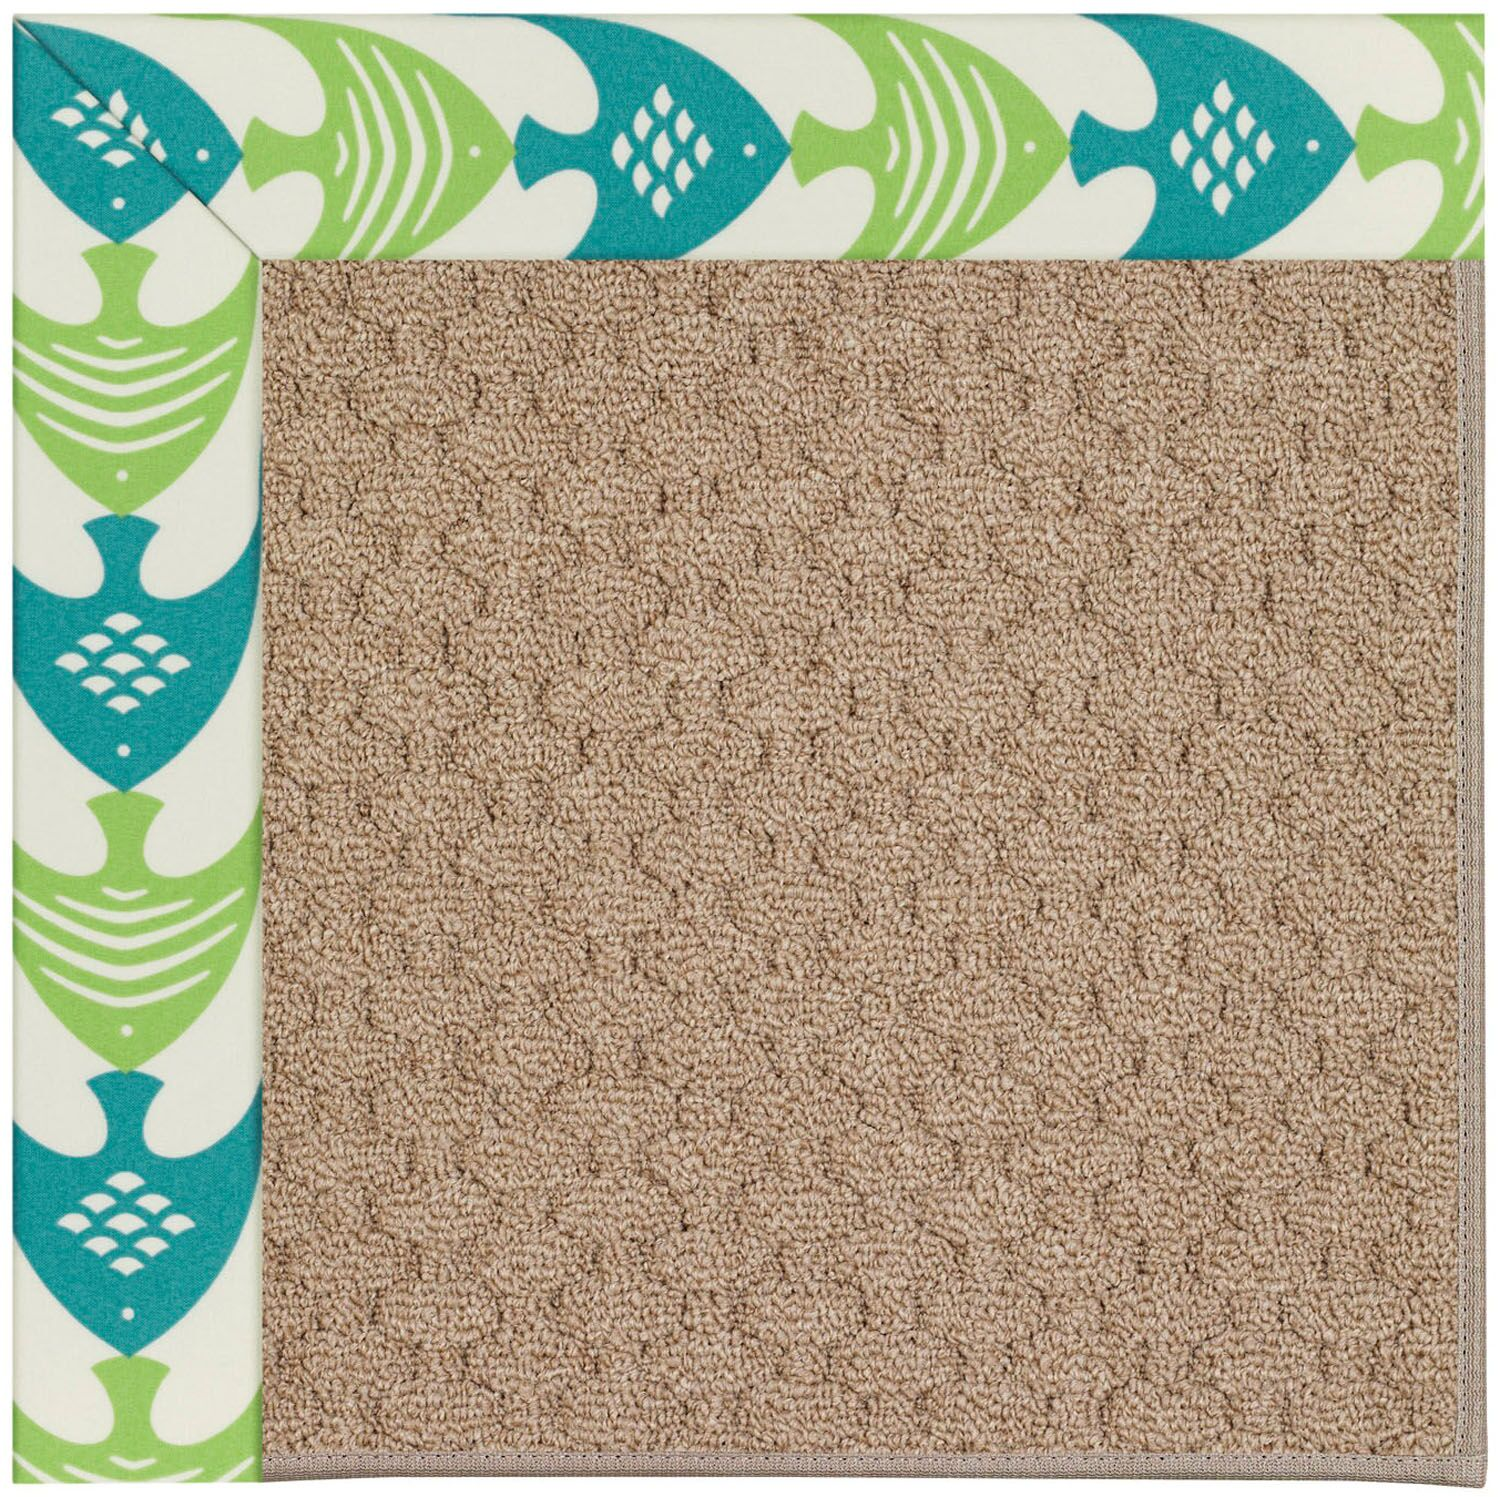 Lisle Machine Tufted Angel Fish Green/Brown Indoor/Outdoor Area Rug Rug Size: Square 8'